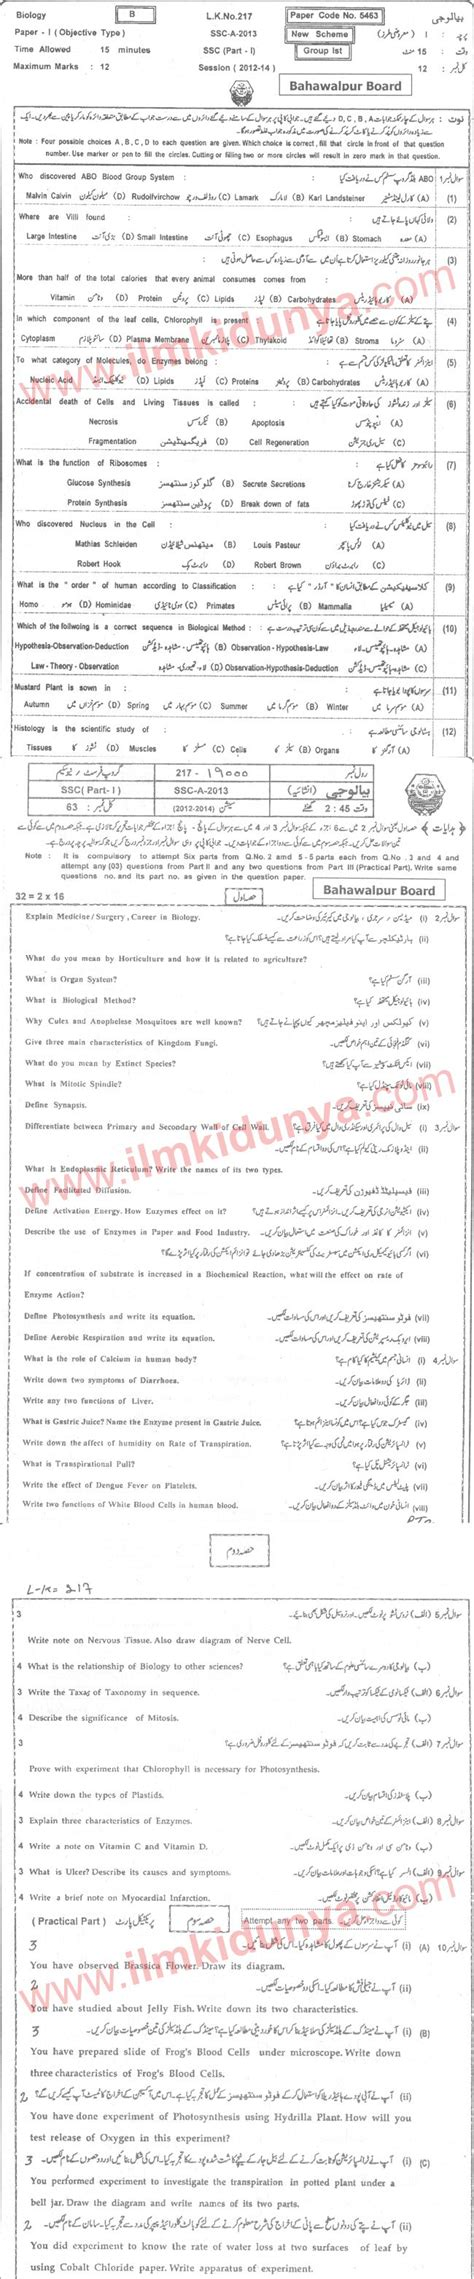 Essay On My City Bahawalpur by Past Papers 2013 Bahawalpur Board 9th Class Biology 1